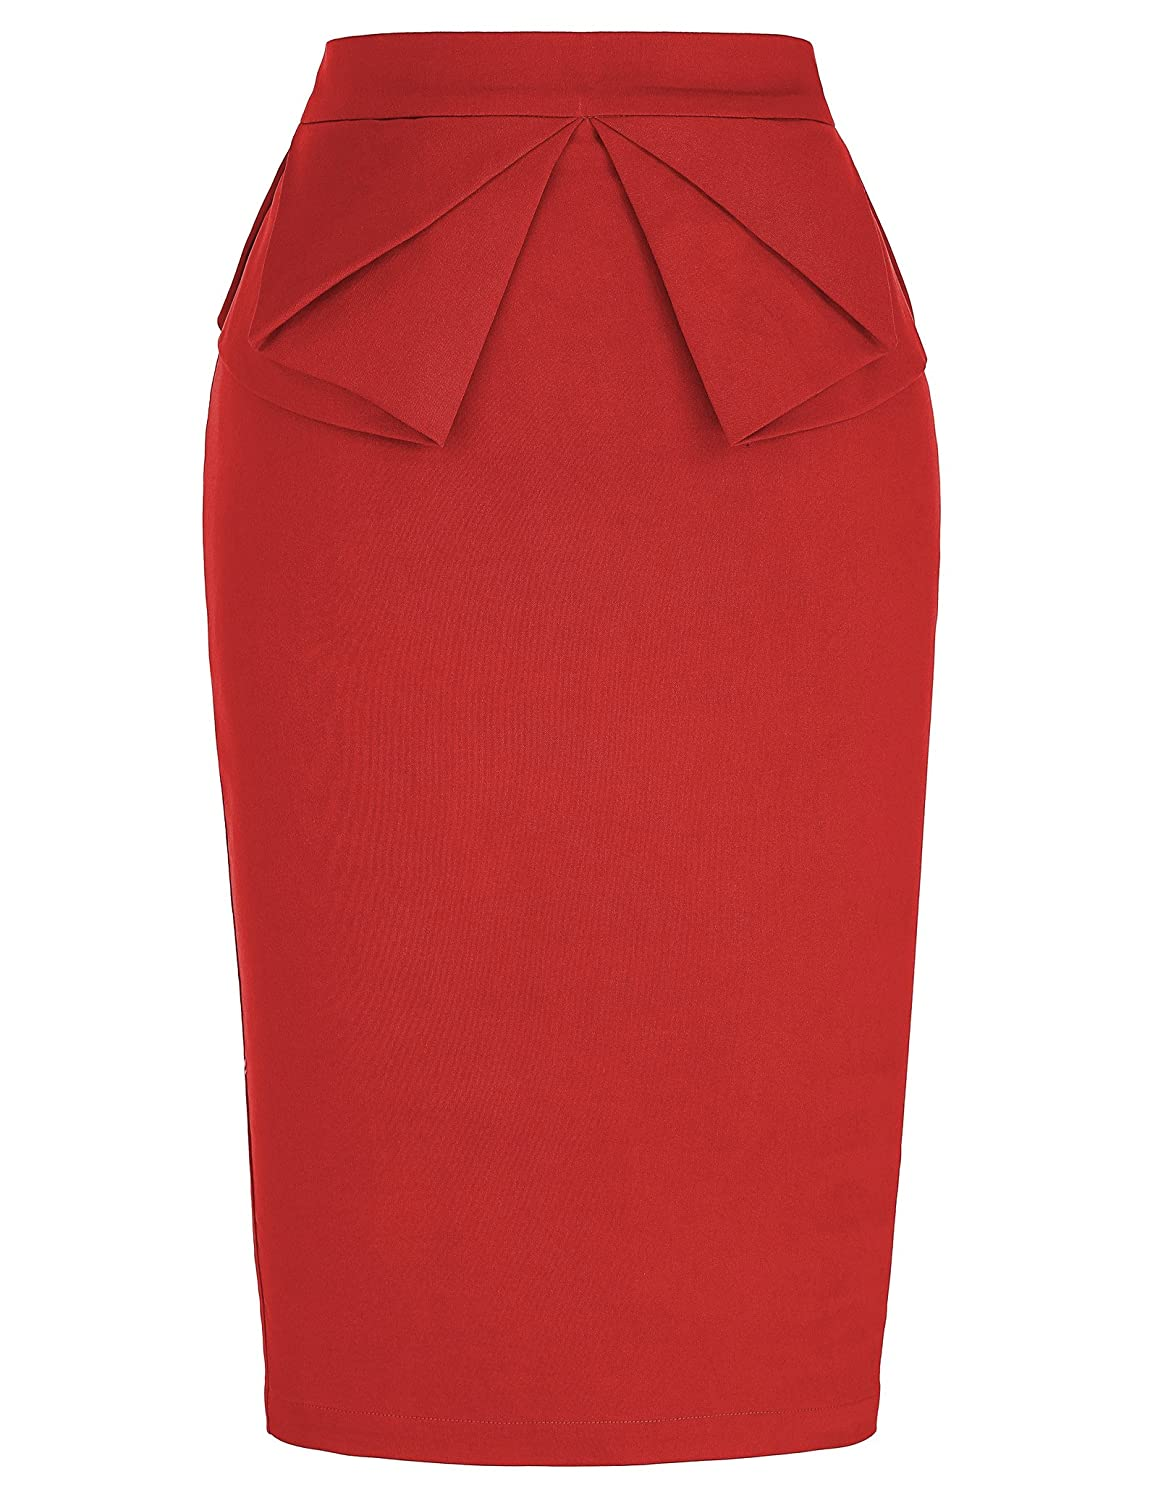 Women's Slim Fit Midi Pencil Skirts for Office Wear AMC008928